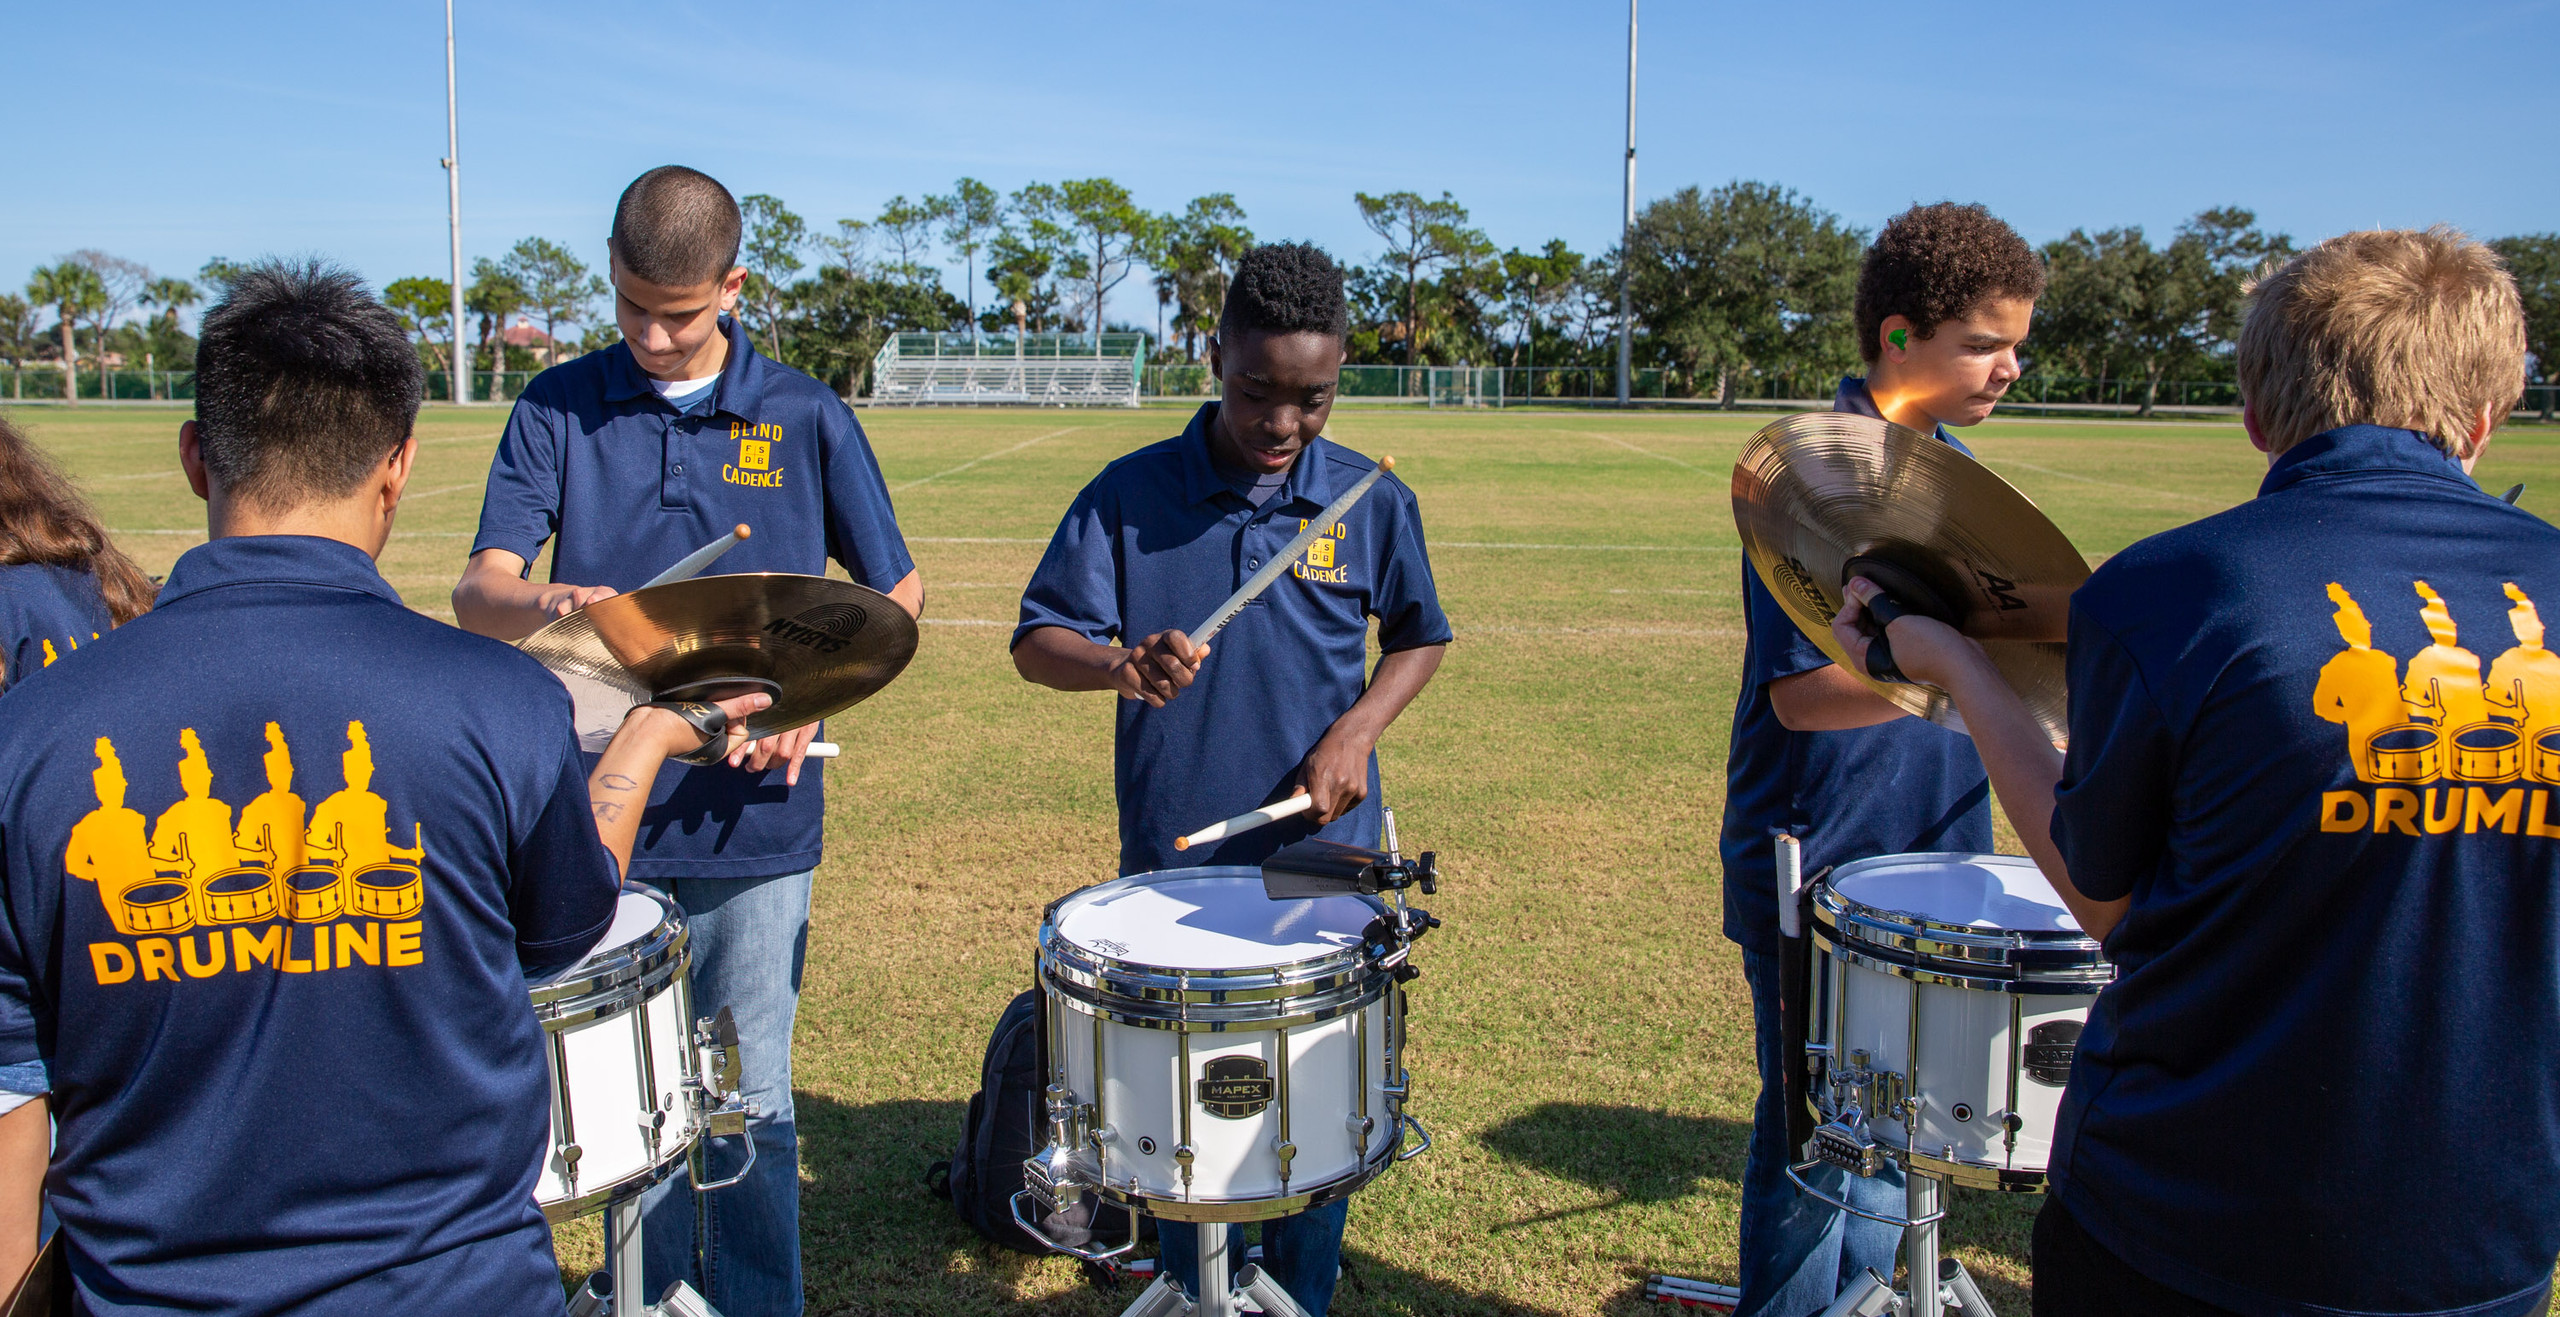 Drumline performing at homecoming. Three students hitting snare drum while two students hold cymbals in front of them.